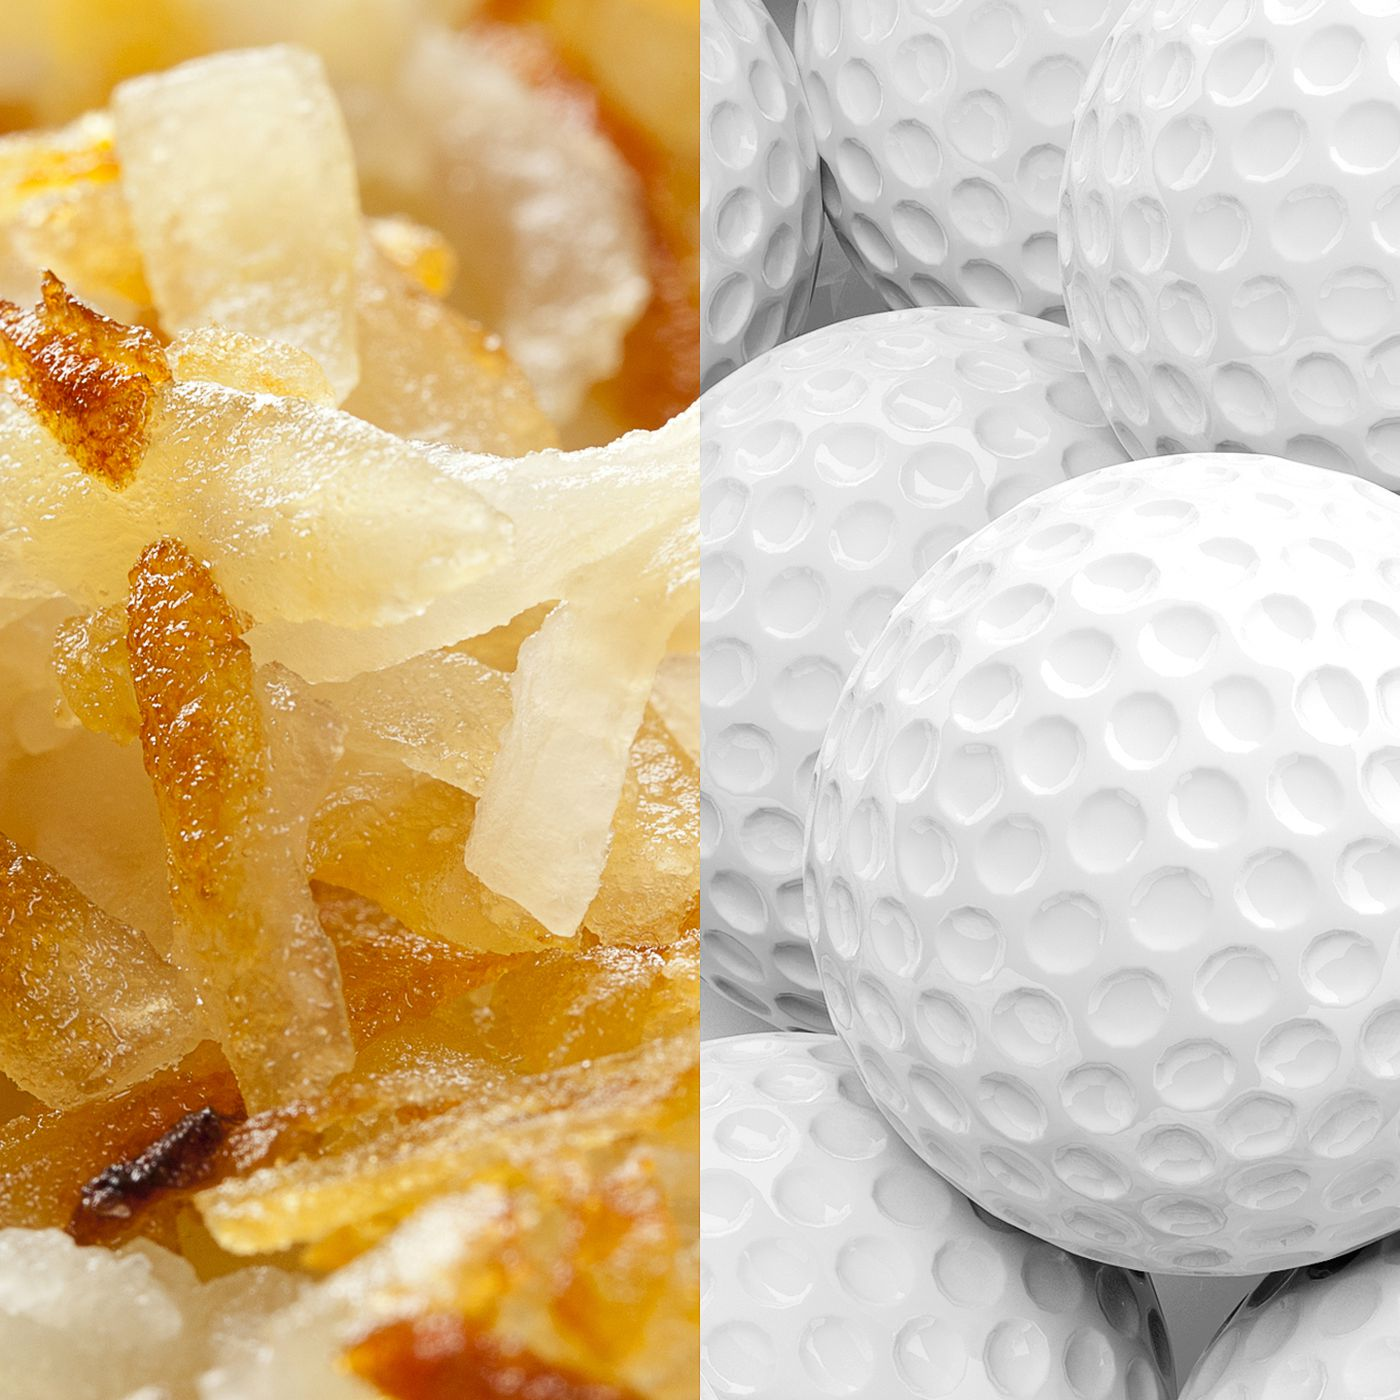 If your hash browns taste like golf balls, it's because they